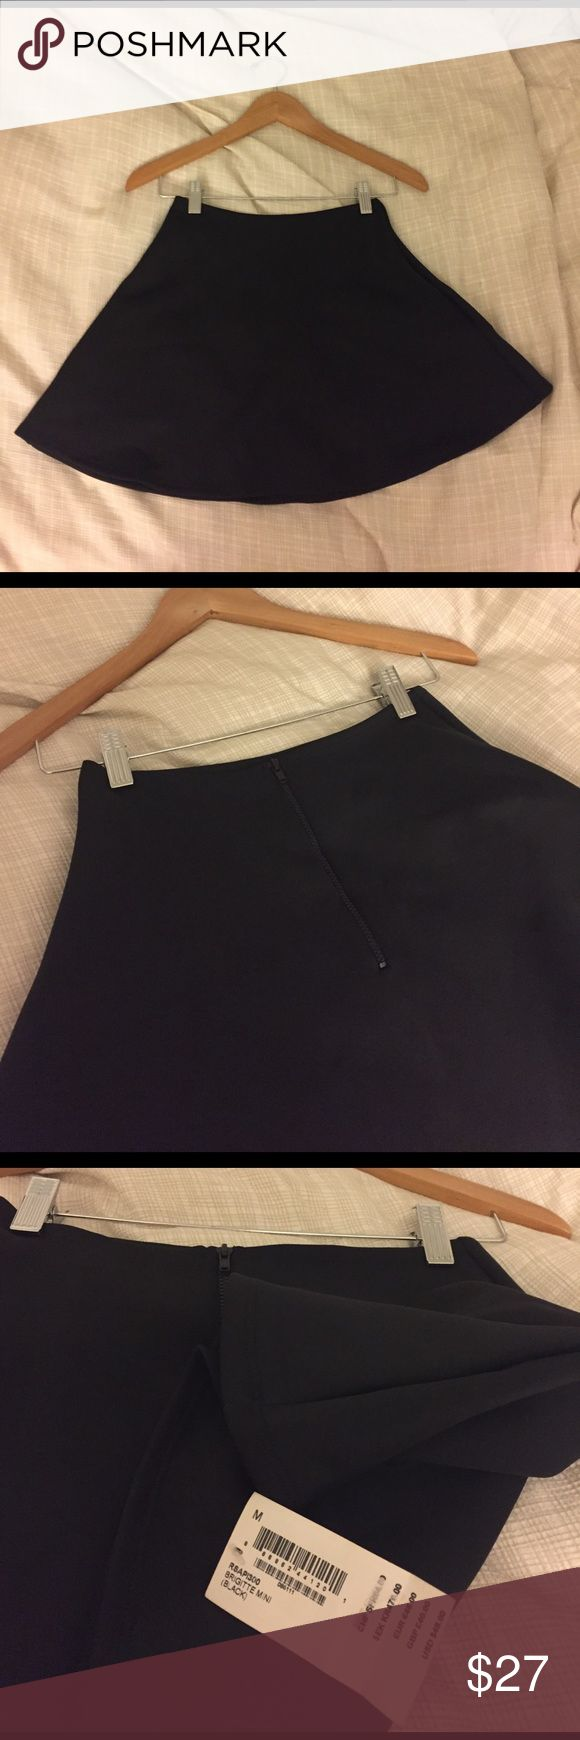 Brand New American Apparel Black Circle Skirt Tags still on, never been worn. American Apparel Black polyester circle, high-waisted skirt. Size Medium. American Apparel Skirts Circle & Skater